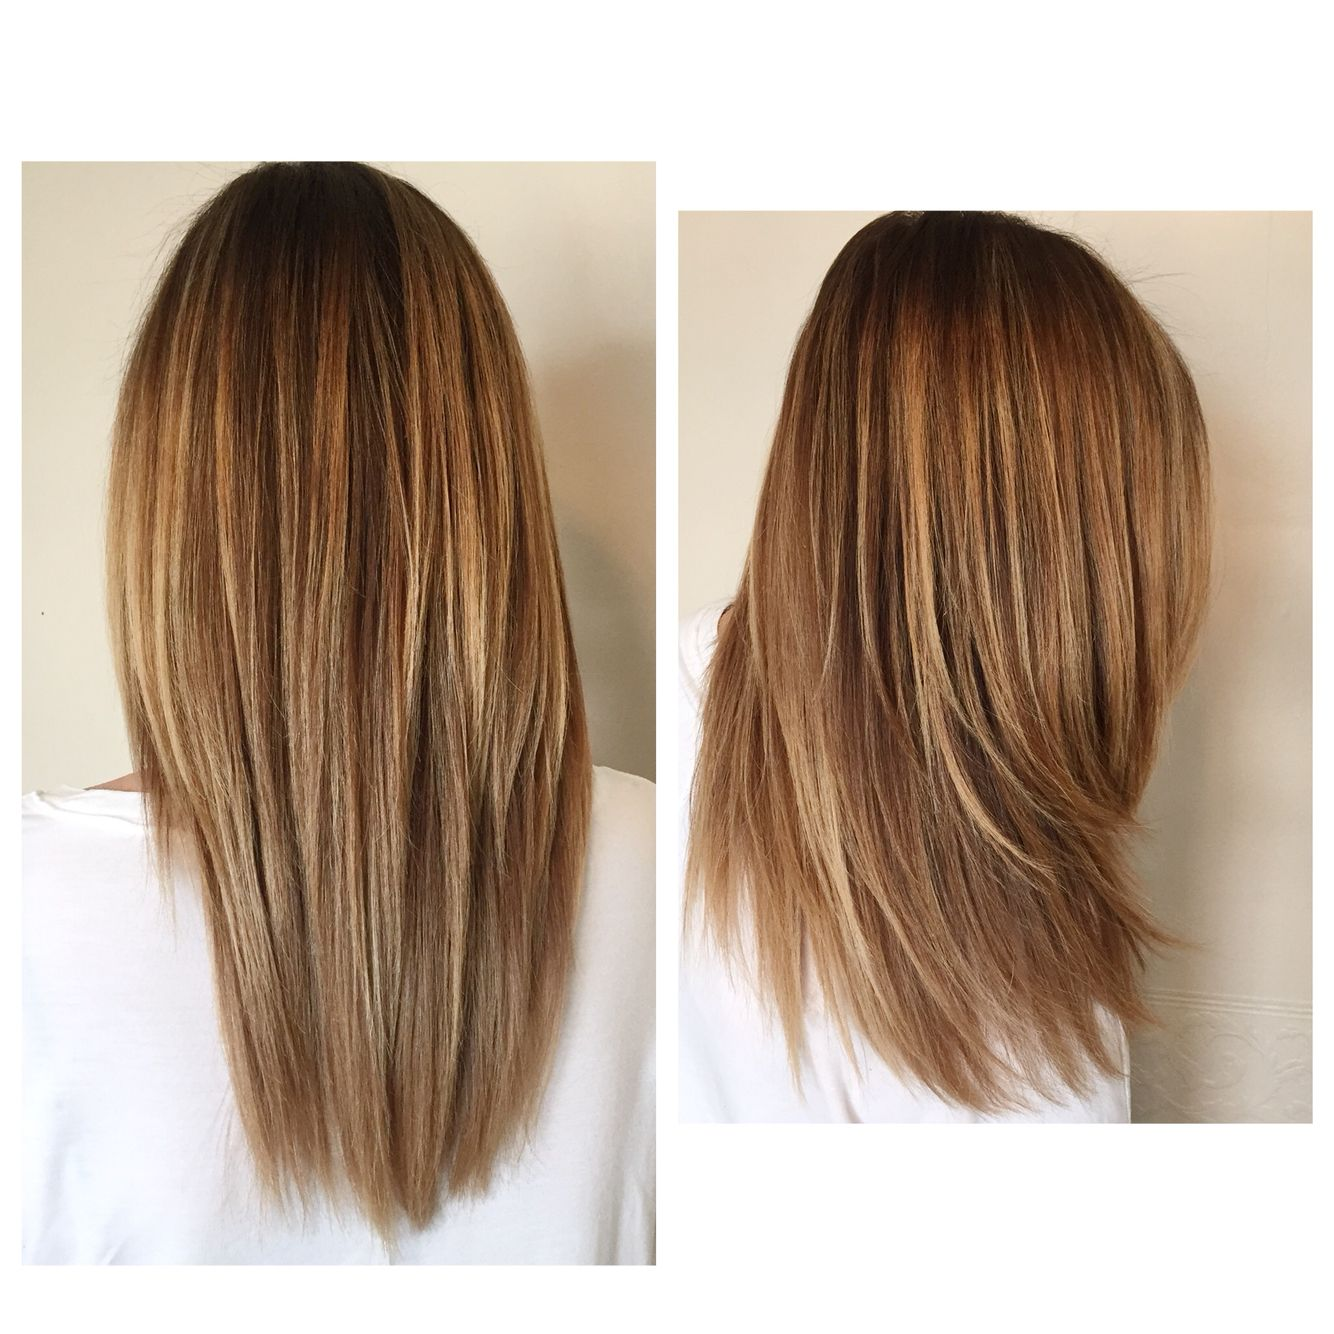 Behind the chair hair color - Guy Tang Inspired Balayage Highlights Babylights Modern Salon Behind The Chair Blonde Blonde Sombre Subtle